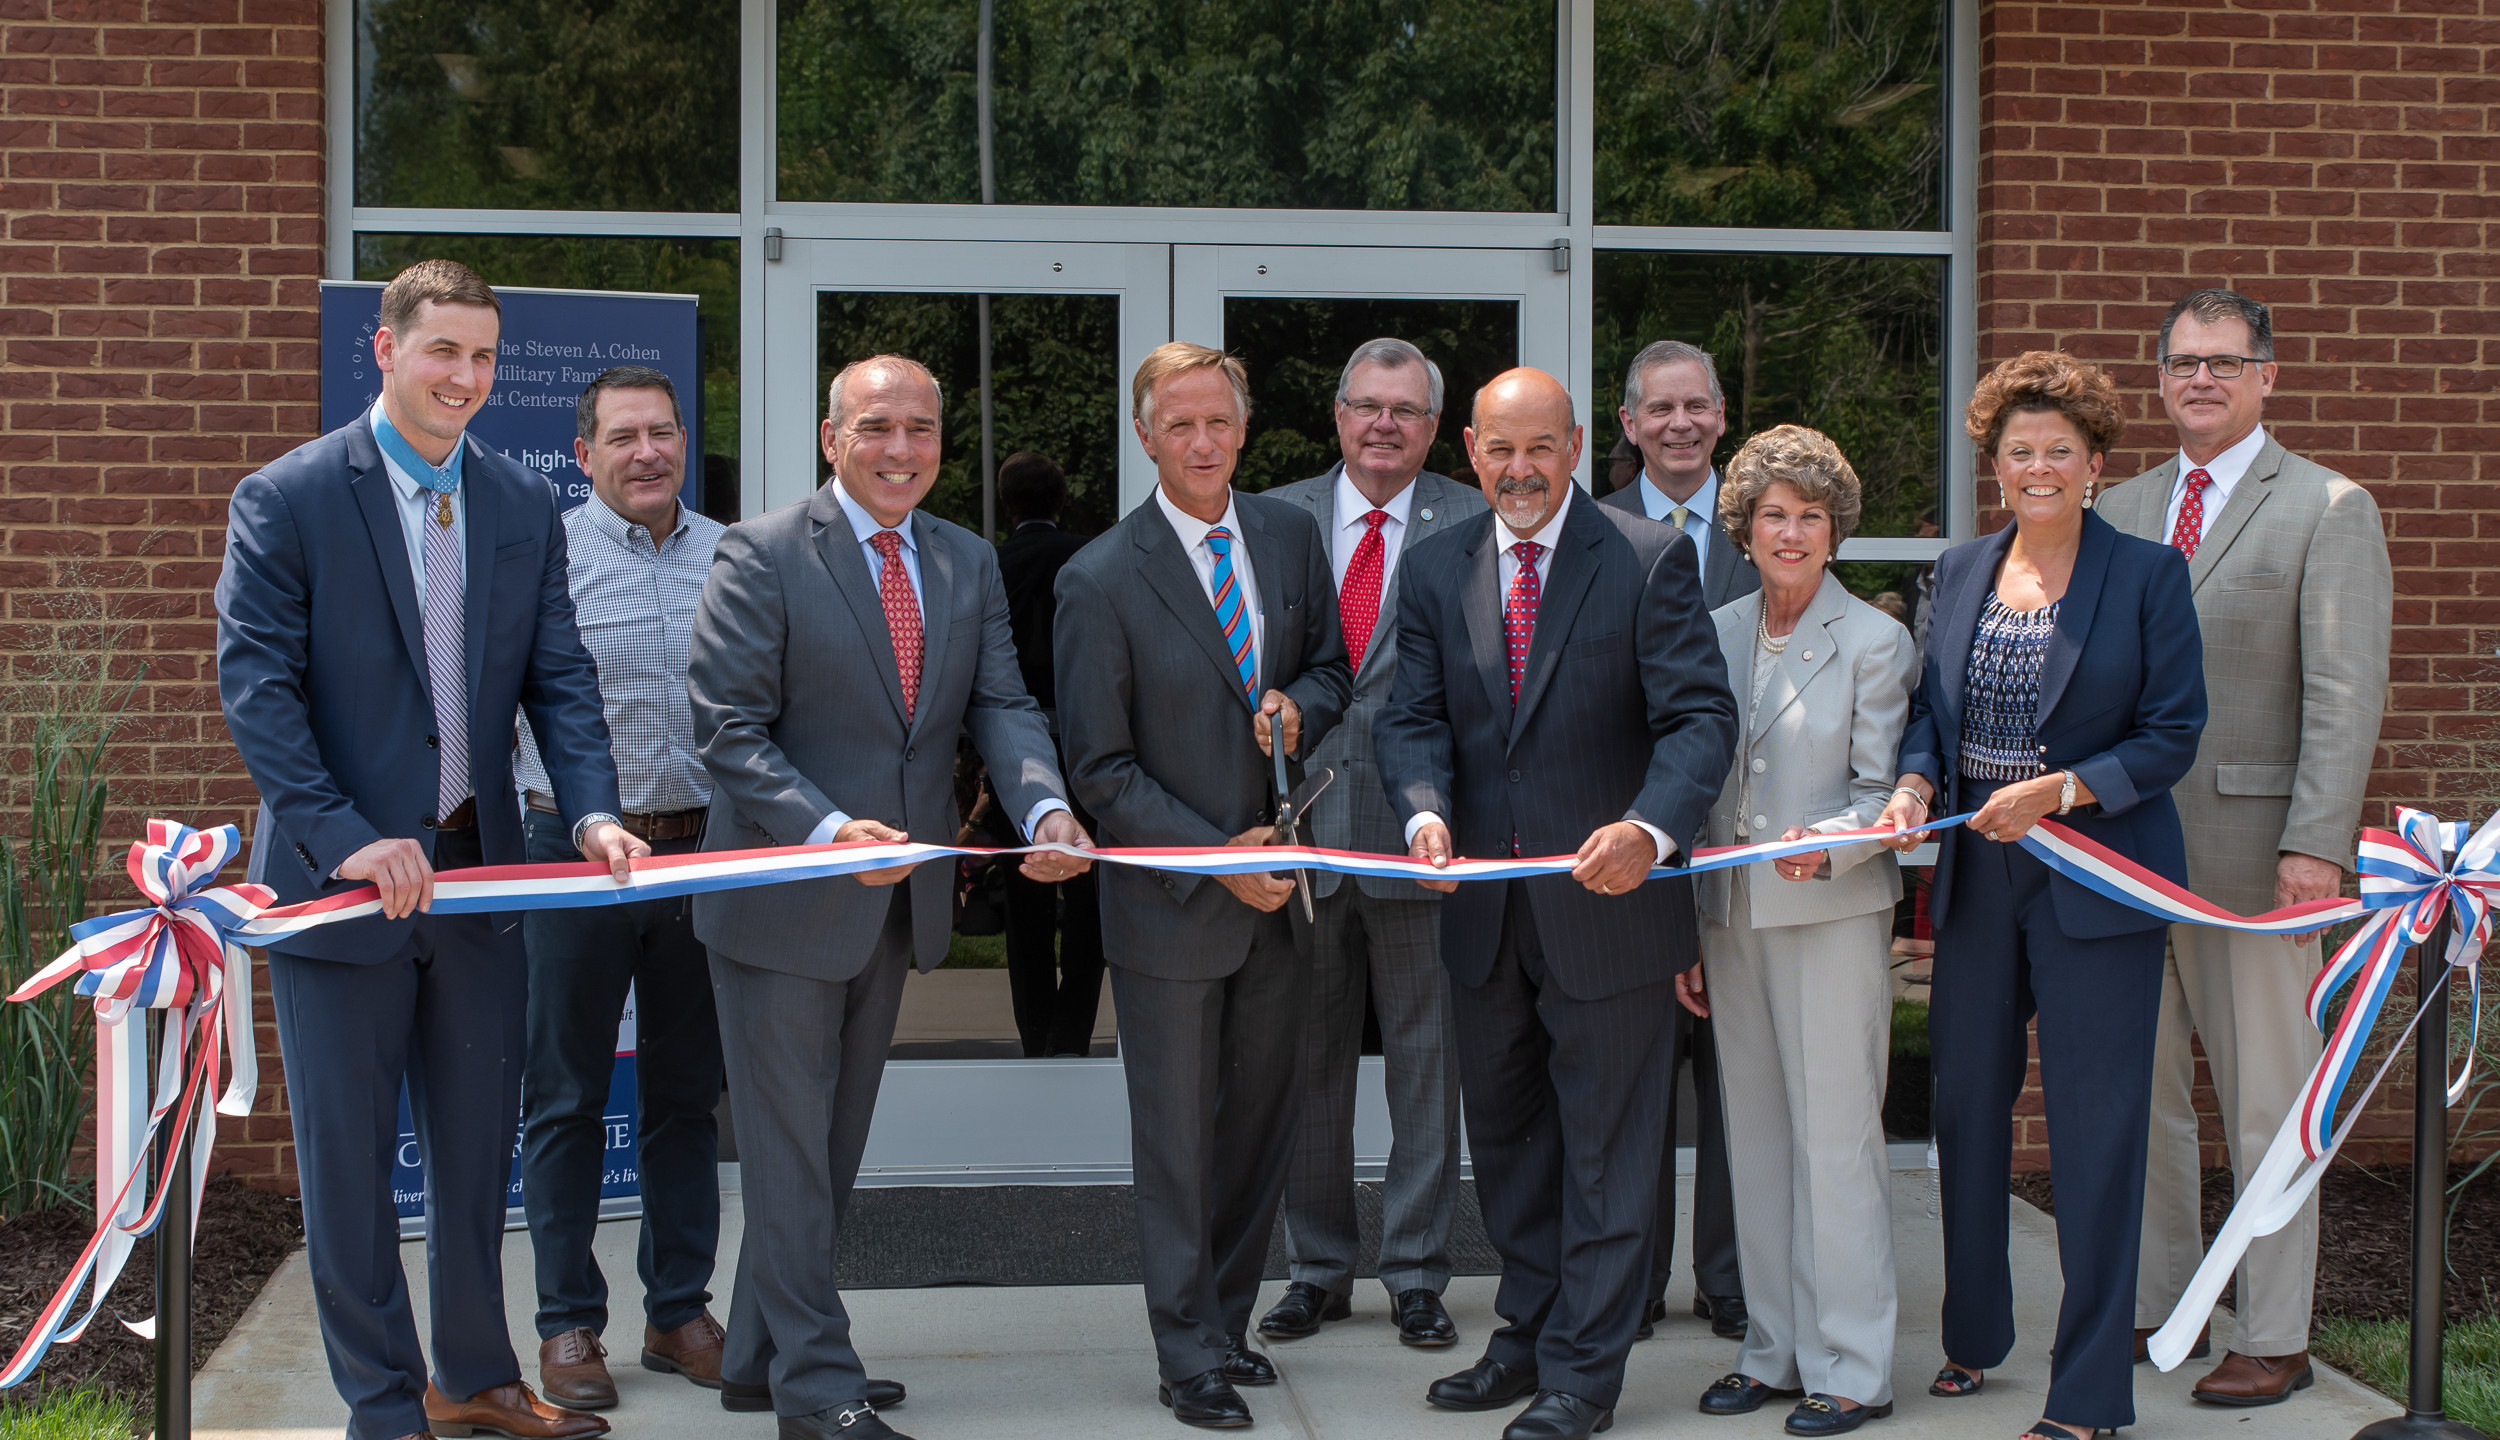 Ribbon cutting ceremony led by Governor